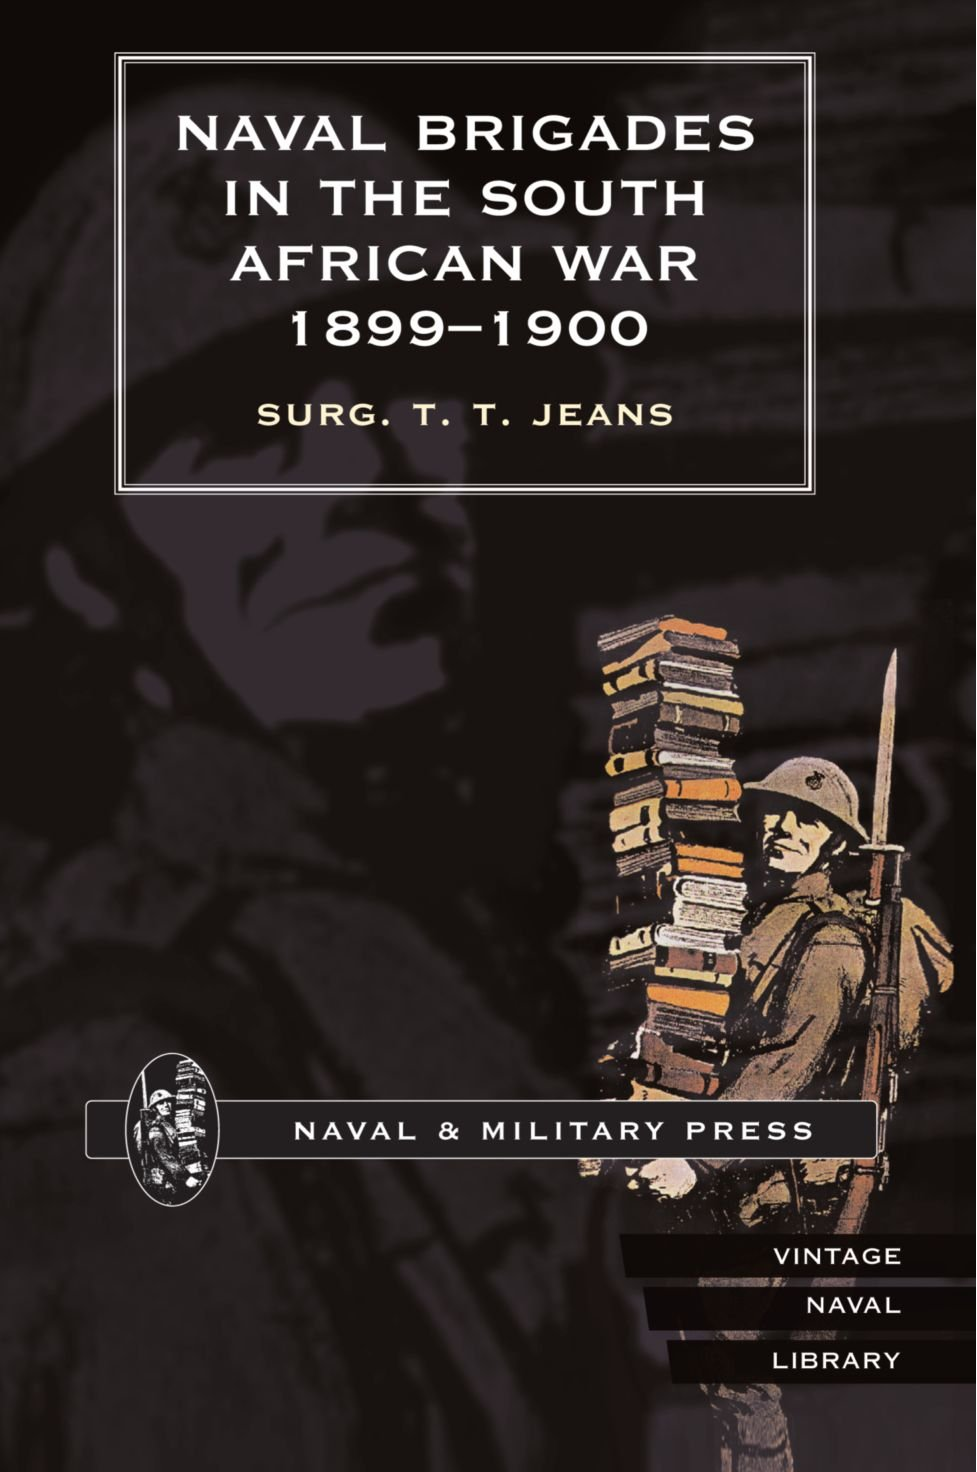 Naval Brigades In The South African War 1899-1900: Naval Brigades In The South African War 1899-1900 pdf